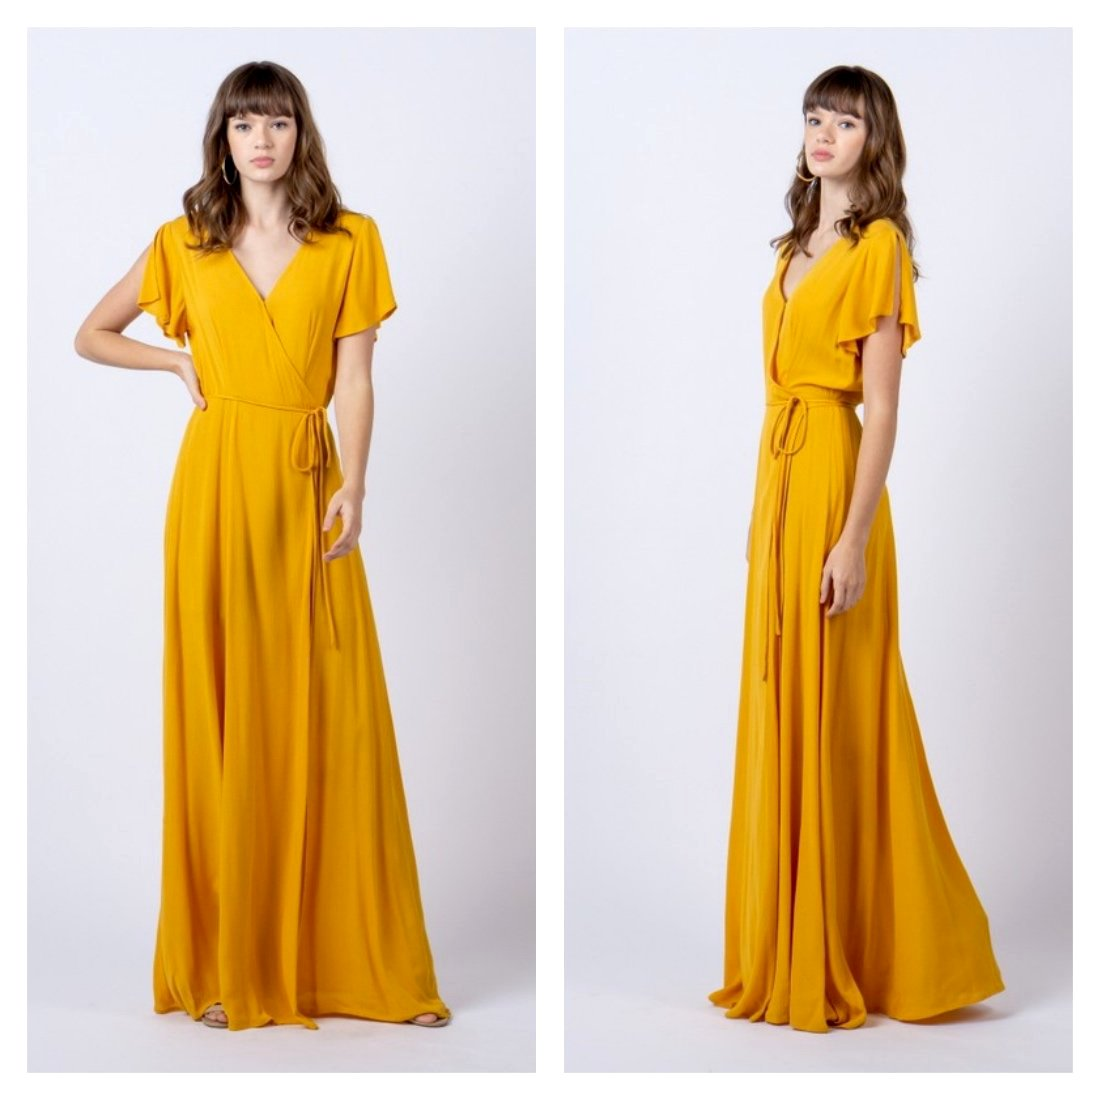 Vibrant golden yellow wrap maxi dress with flutter sleeves.